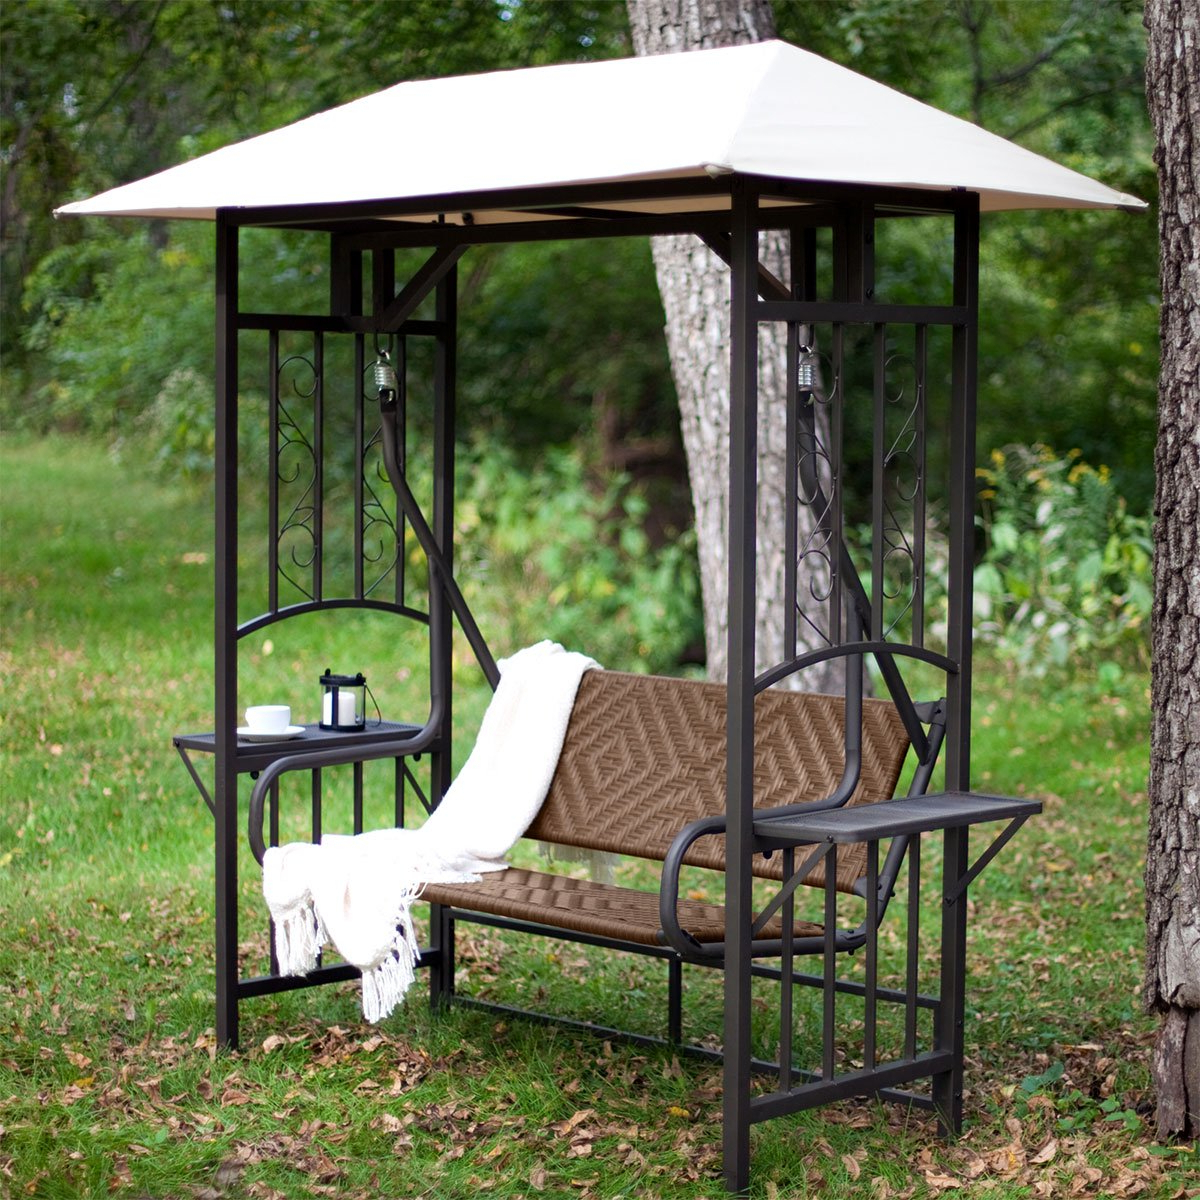 Trendy Wicker Glider Outdoor Porch Swings With Stand With Regard To 10 Pretty Porch Swings – The Family Handyman (View 24 of 30)